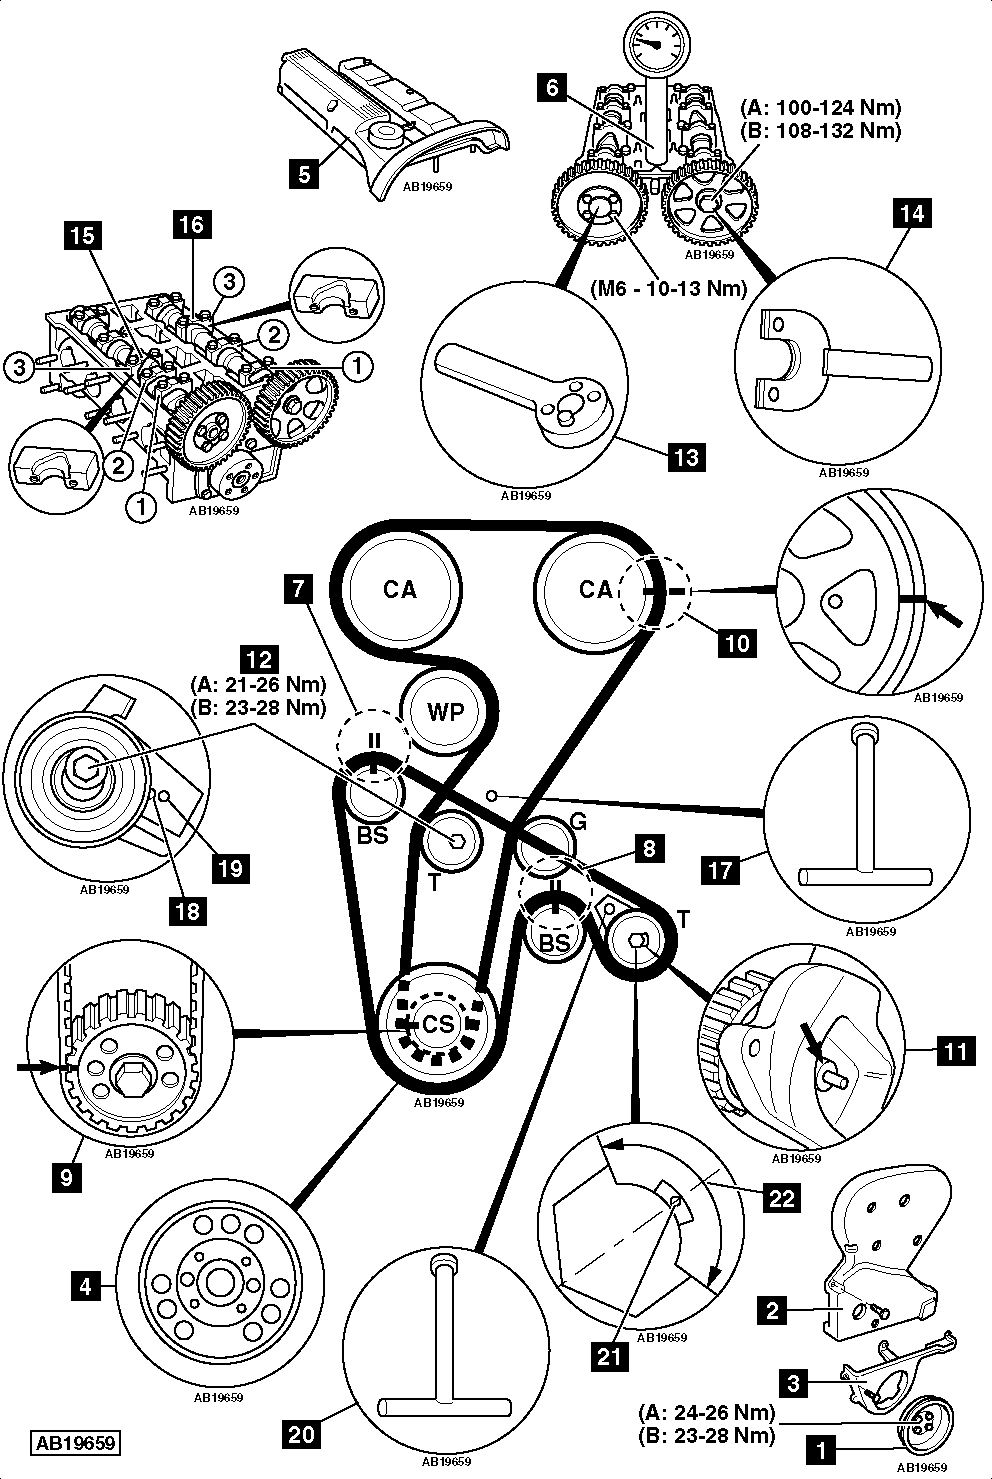 Engine external together with Diagram view additionally 512250 furthermore V6 Engine Diagram Transmission in addition 85 Ford Econoline Van Wiring Diagram. on 2005 ford escape body parts diagram